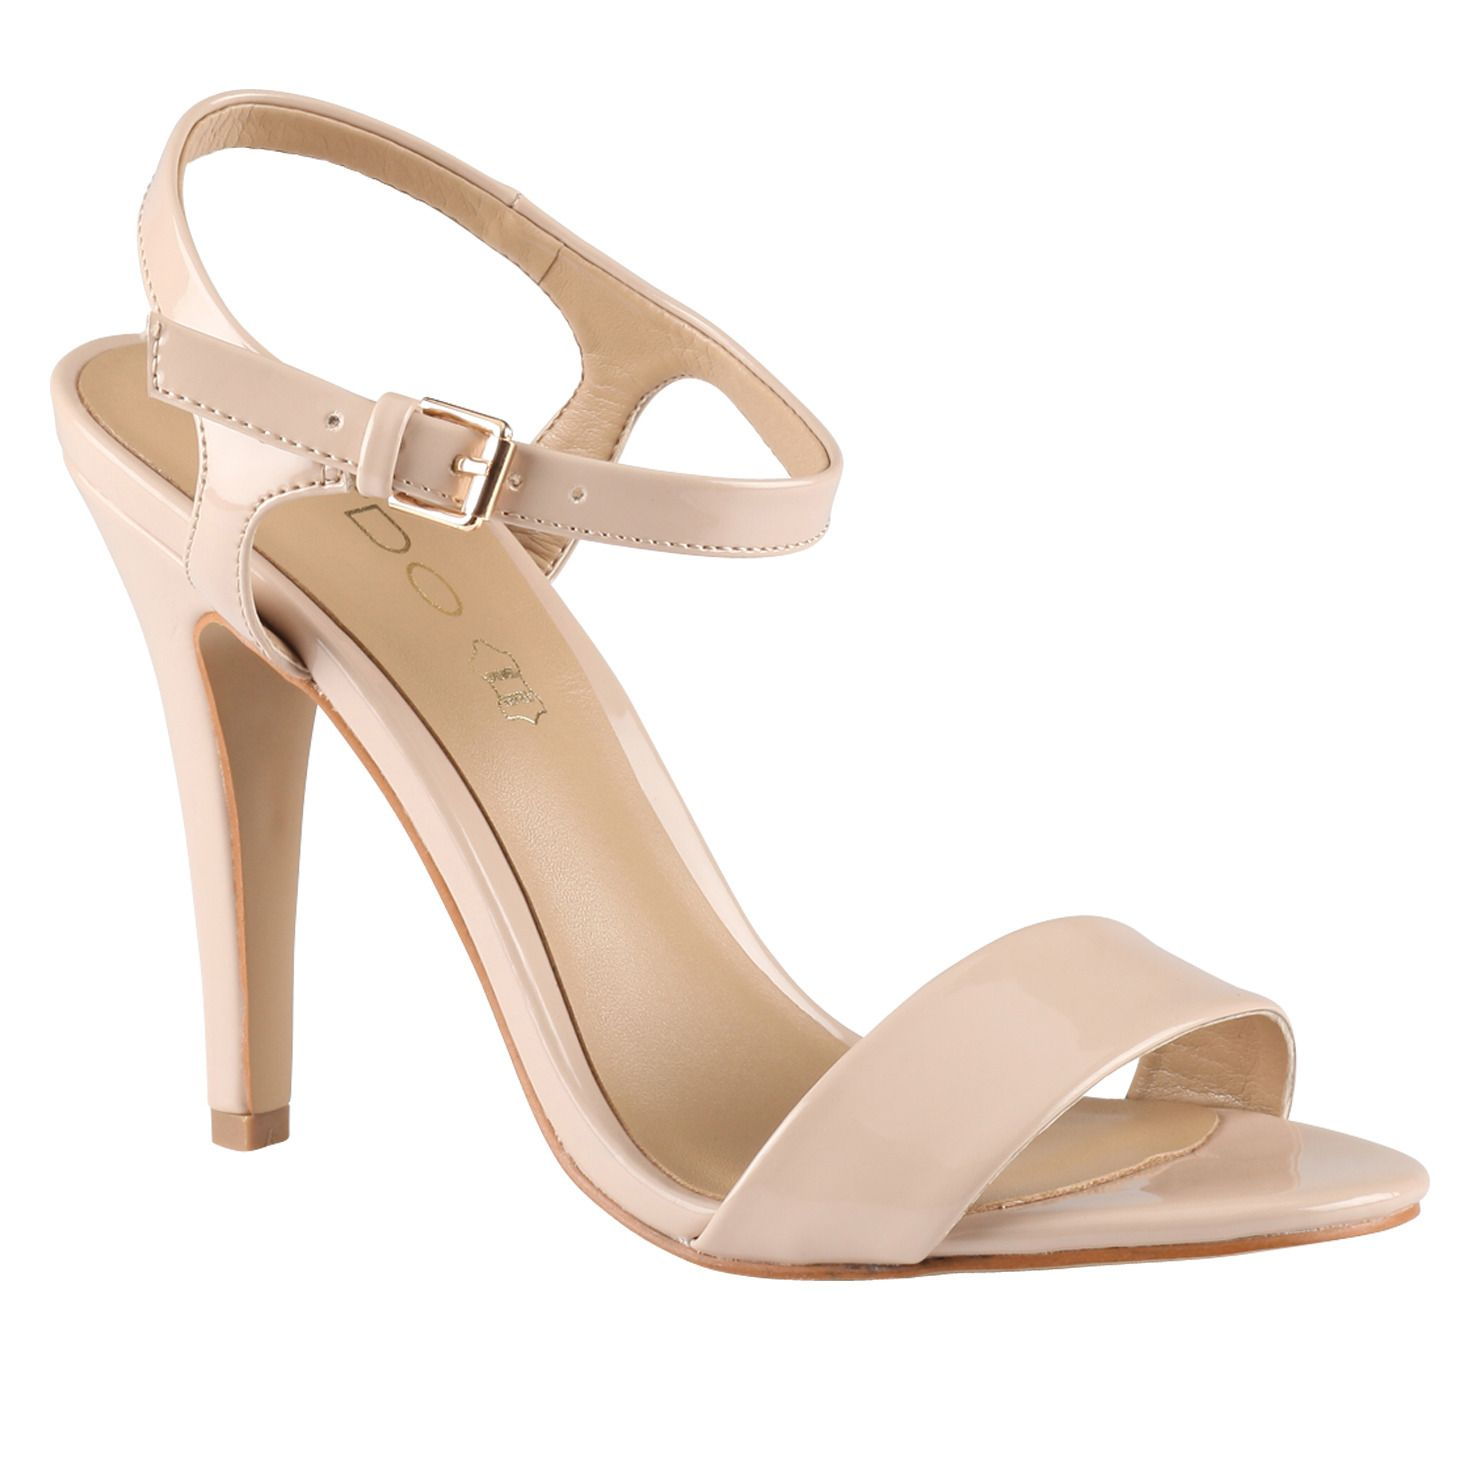 Bridal Shoes Aldo: Pin On Heels For Days